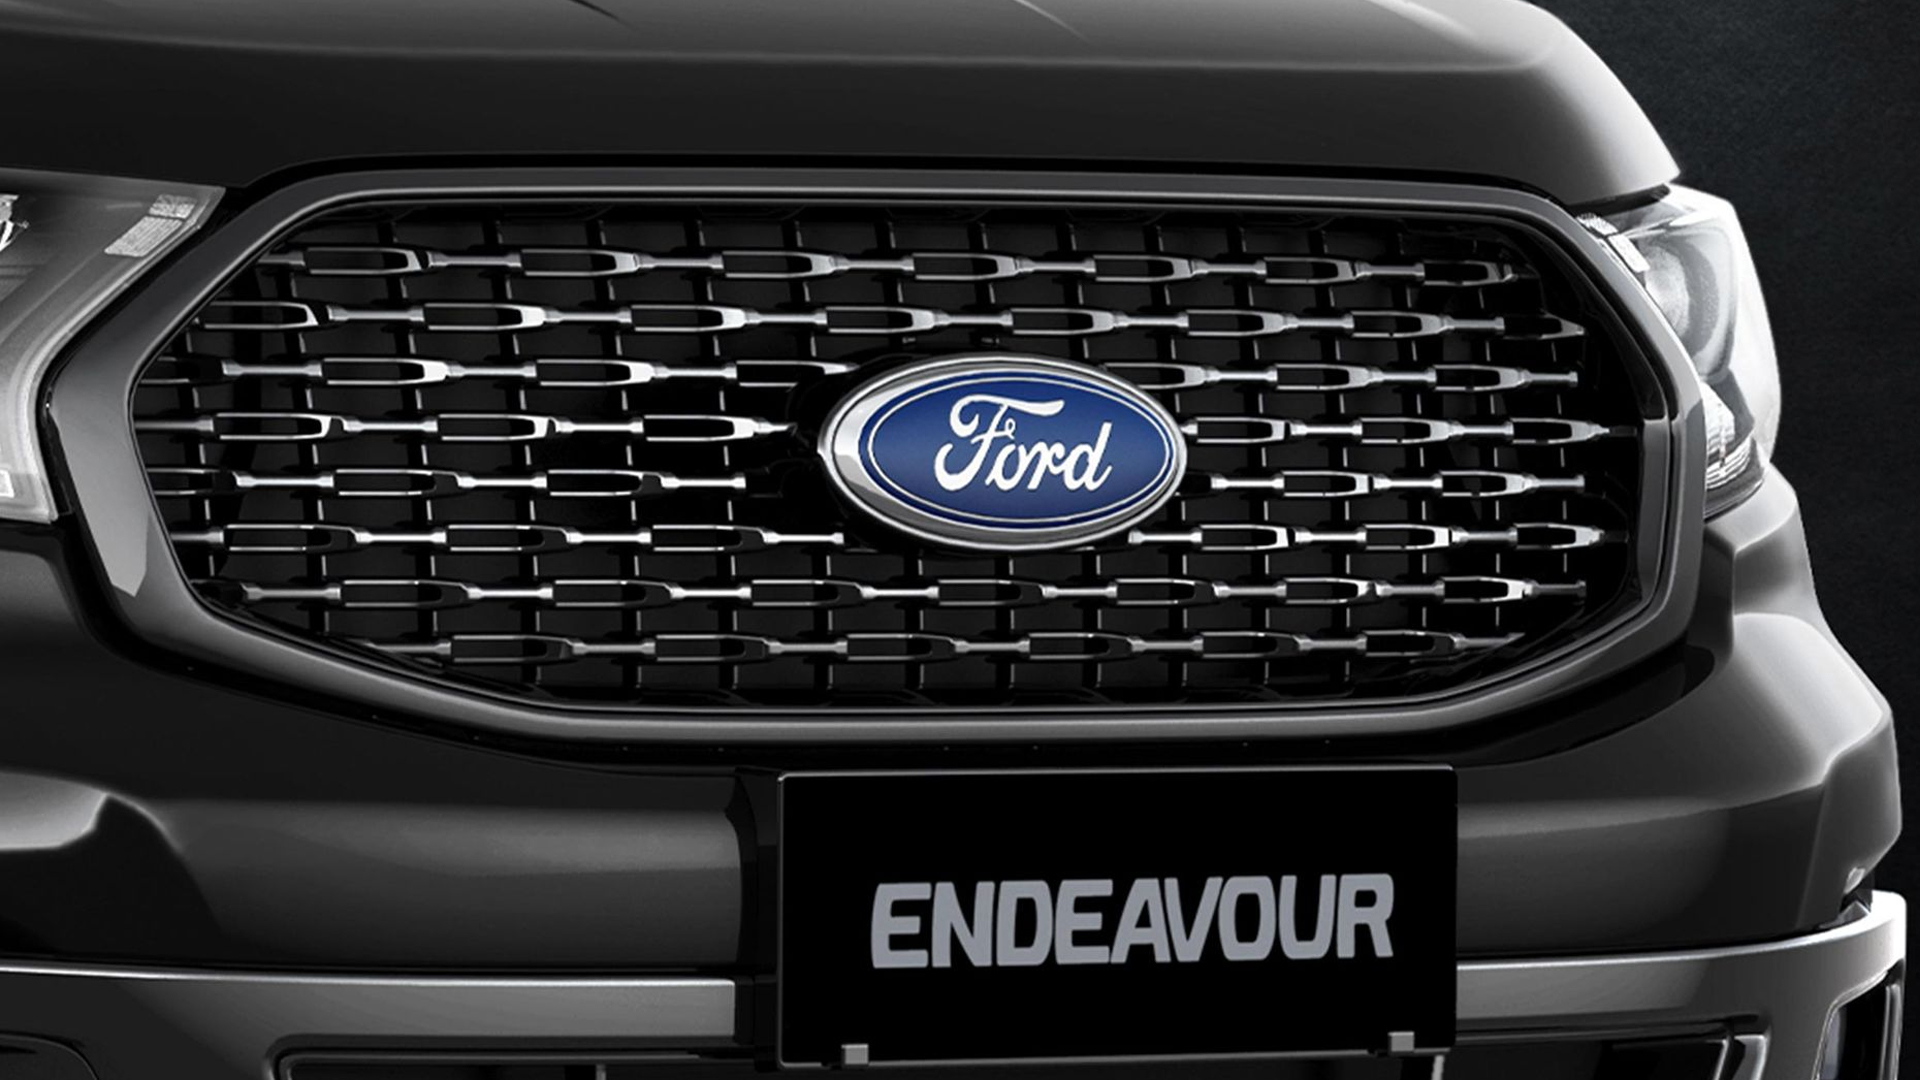 Ford Endeavour 2020 Sport 4X4 AT Exterior